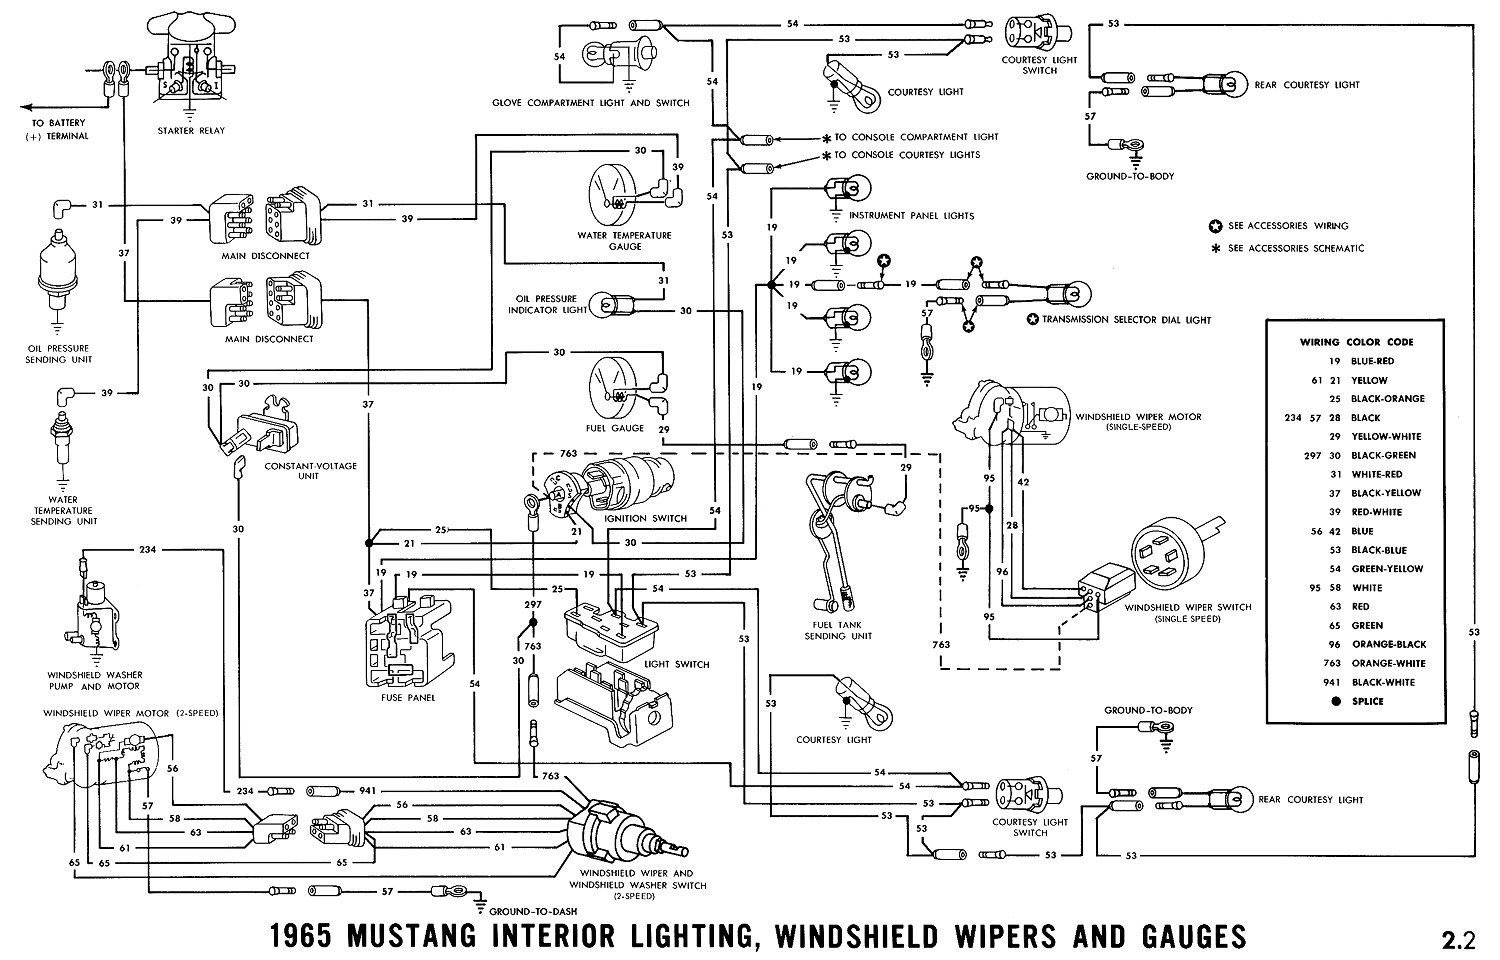 1965g 1965 mustang wiring diagrams average joe restoration wiring diagram for mustang 2054 skid steer at gsmportal.co